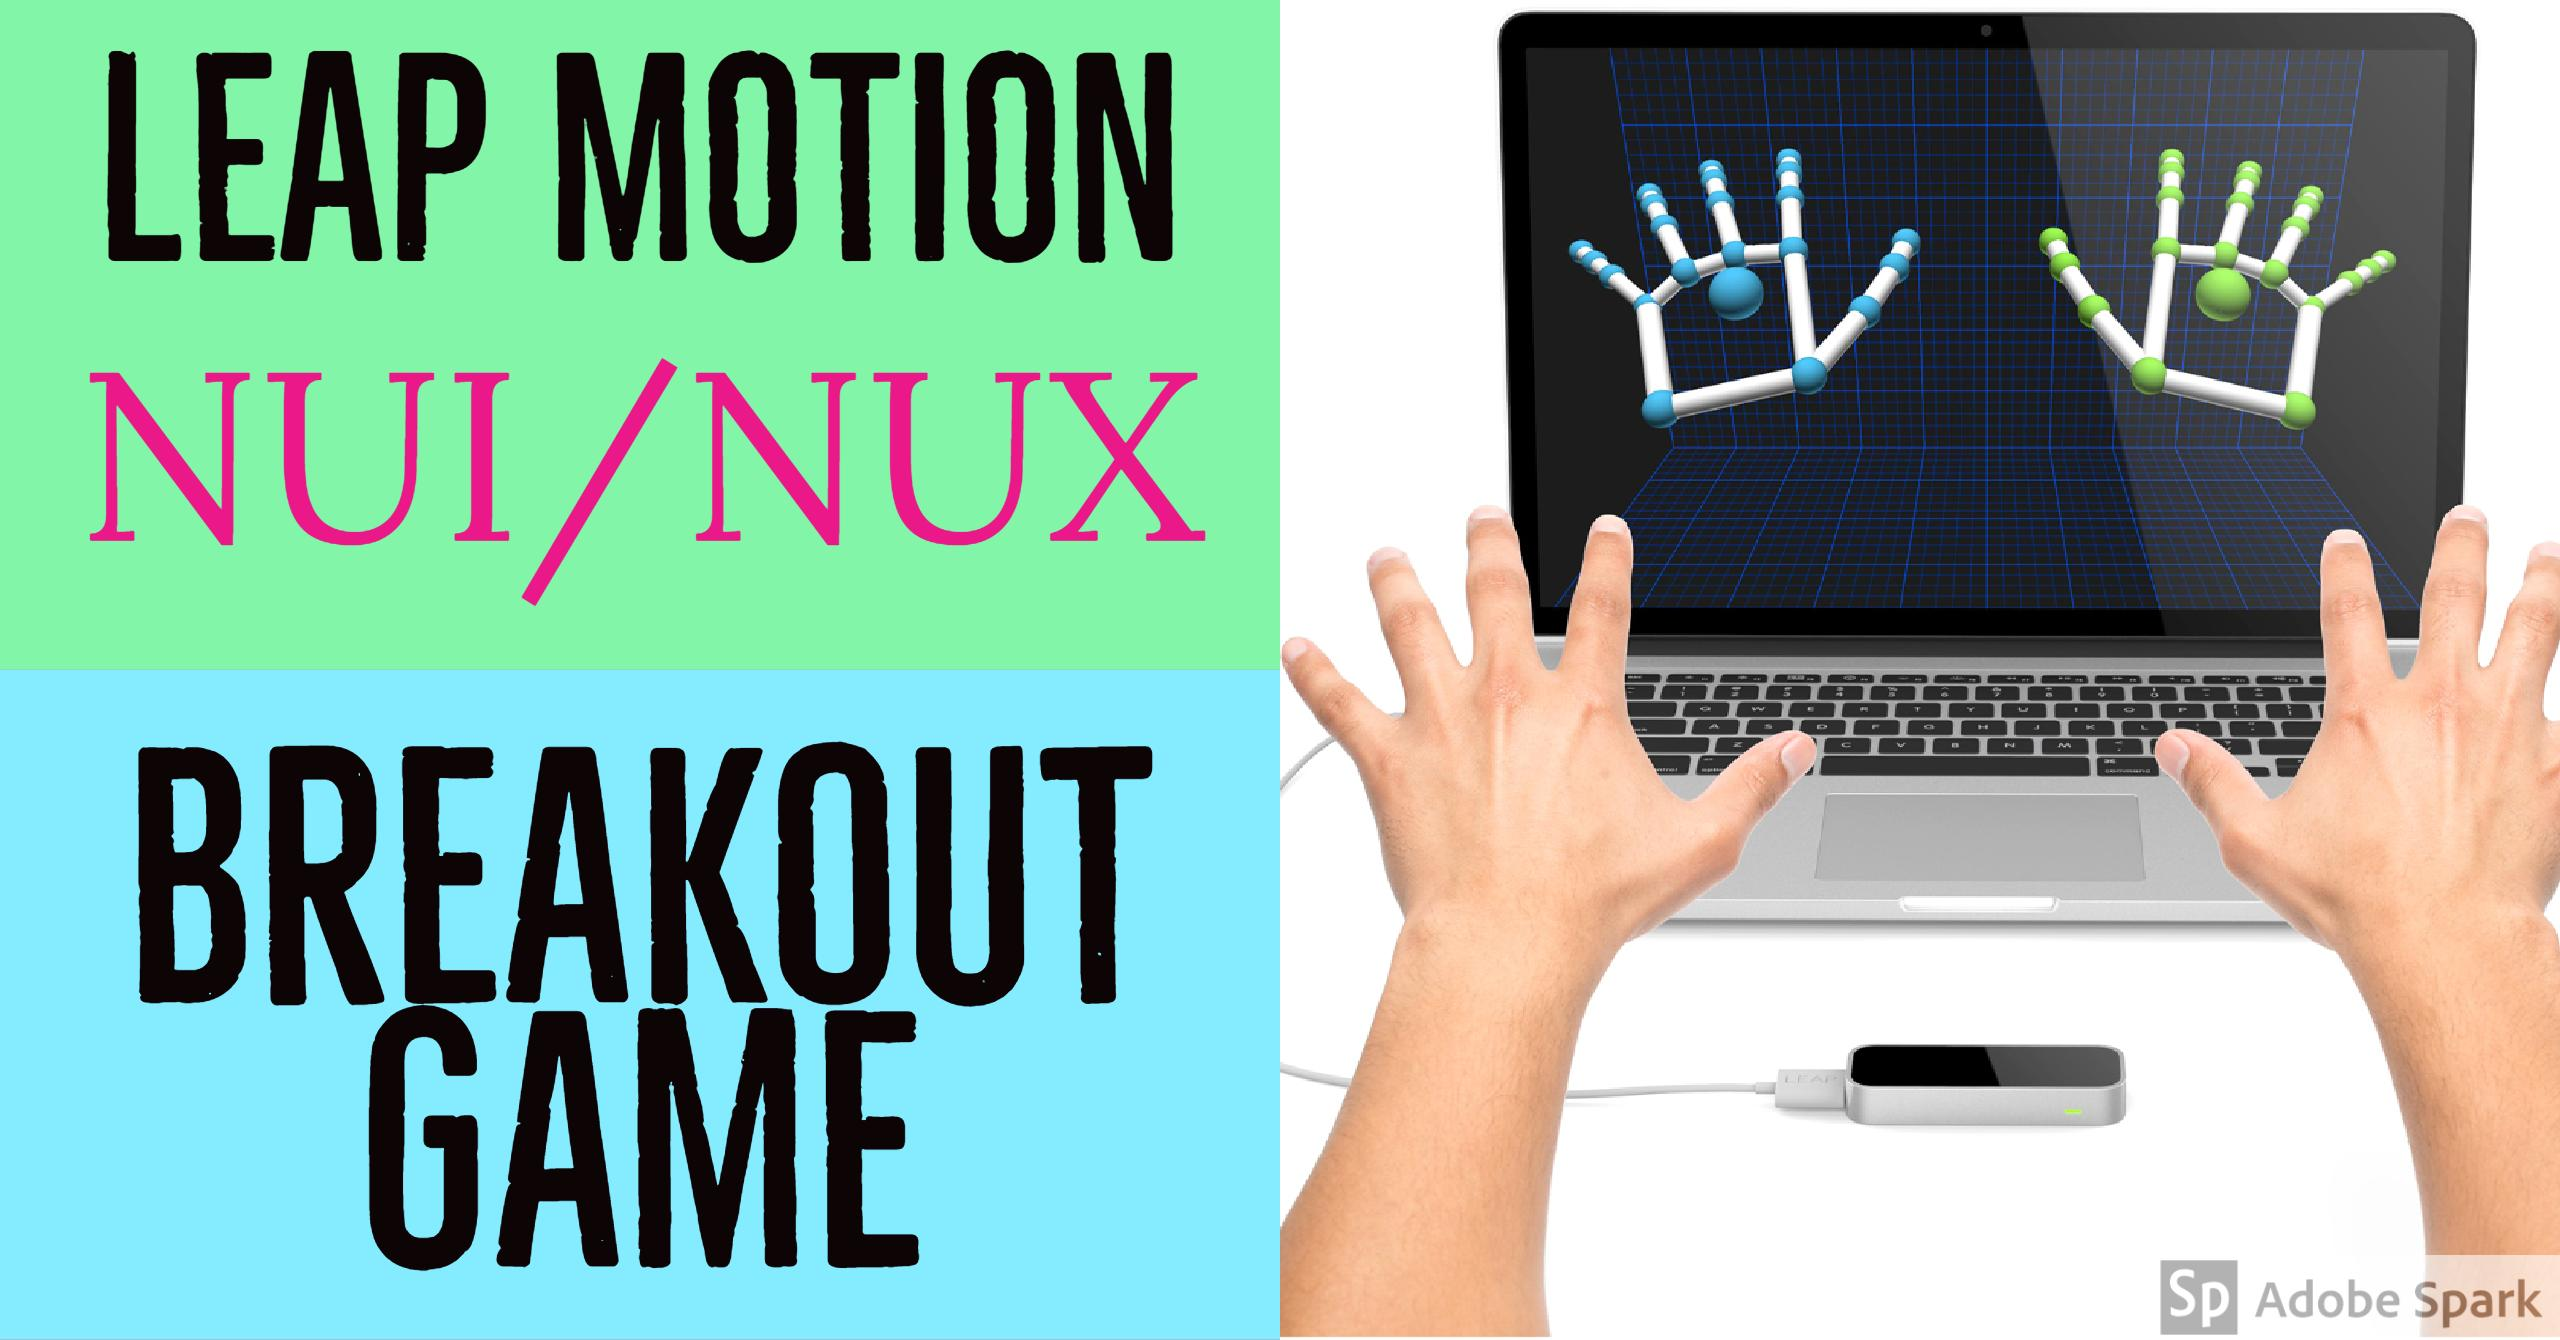 Leap Motion - Breakout Game